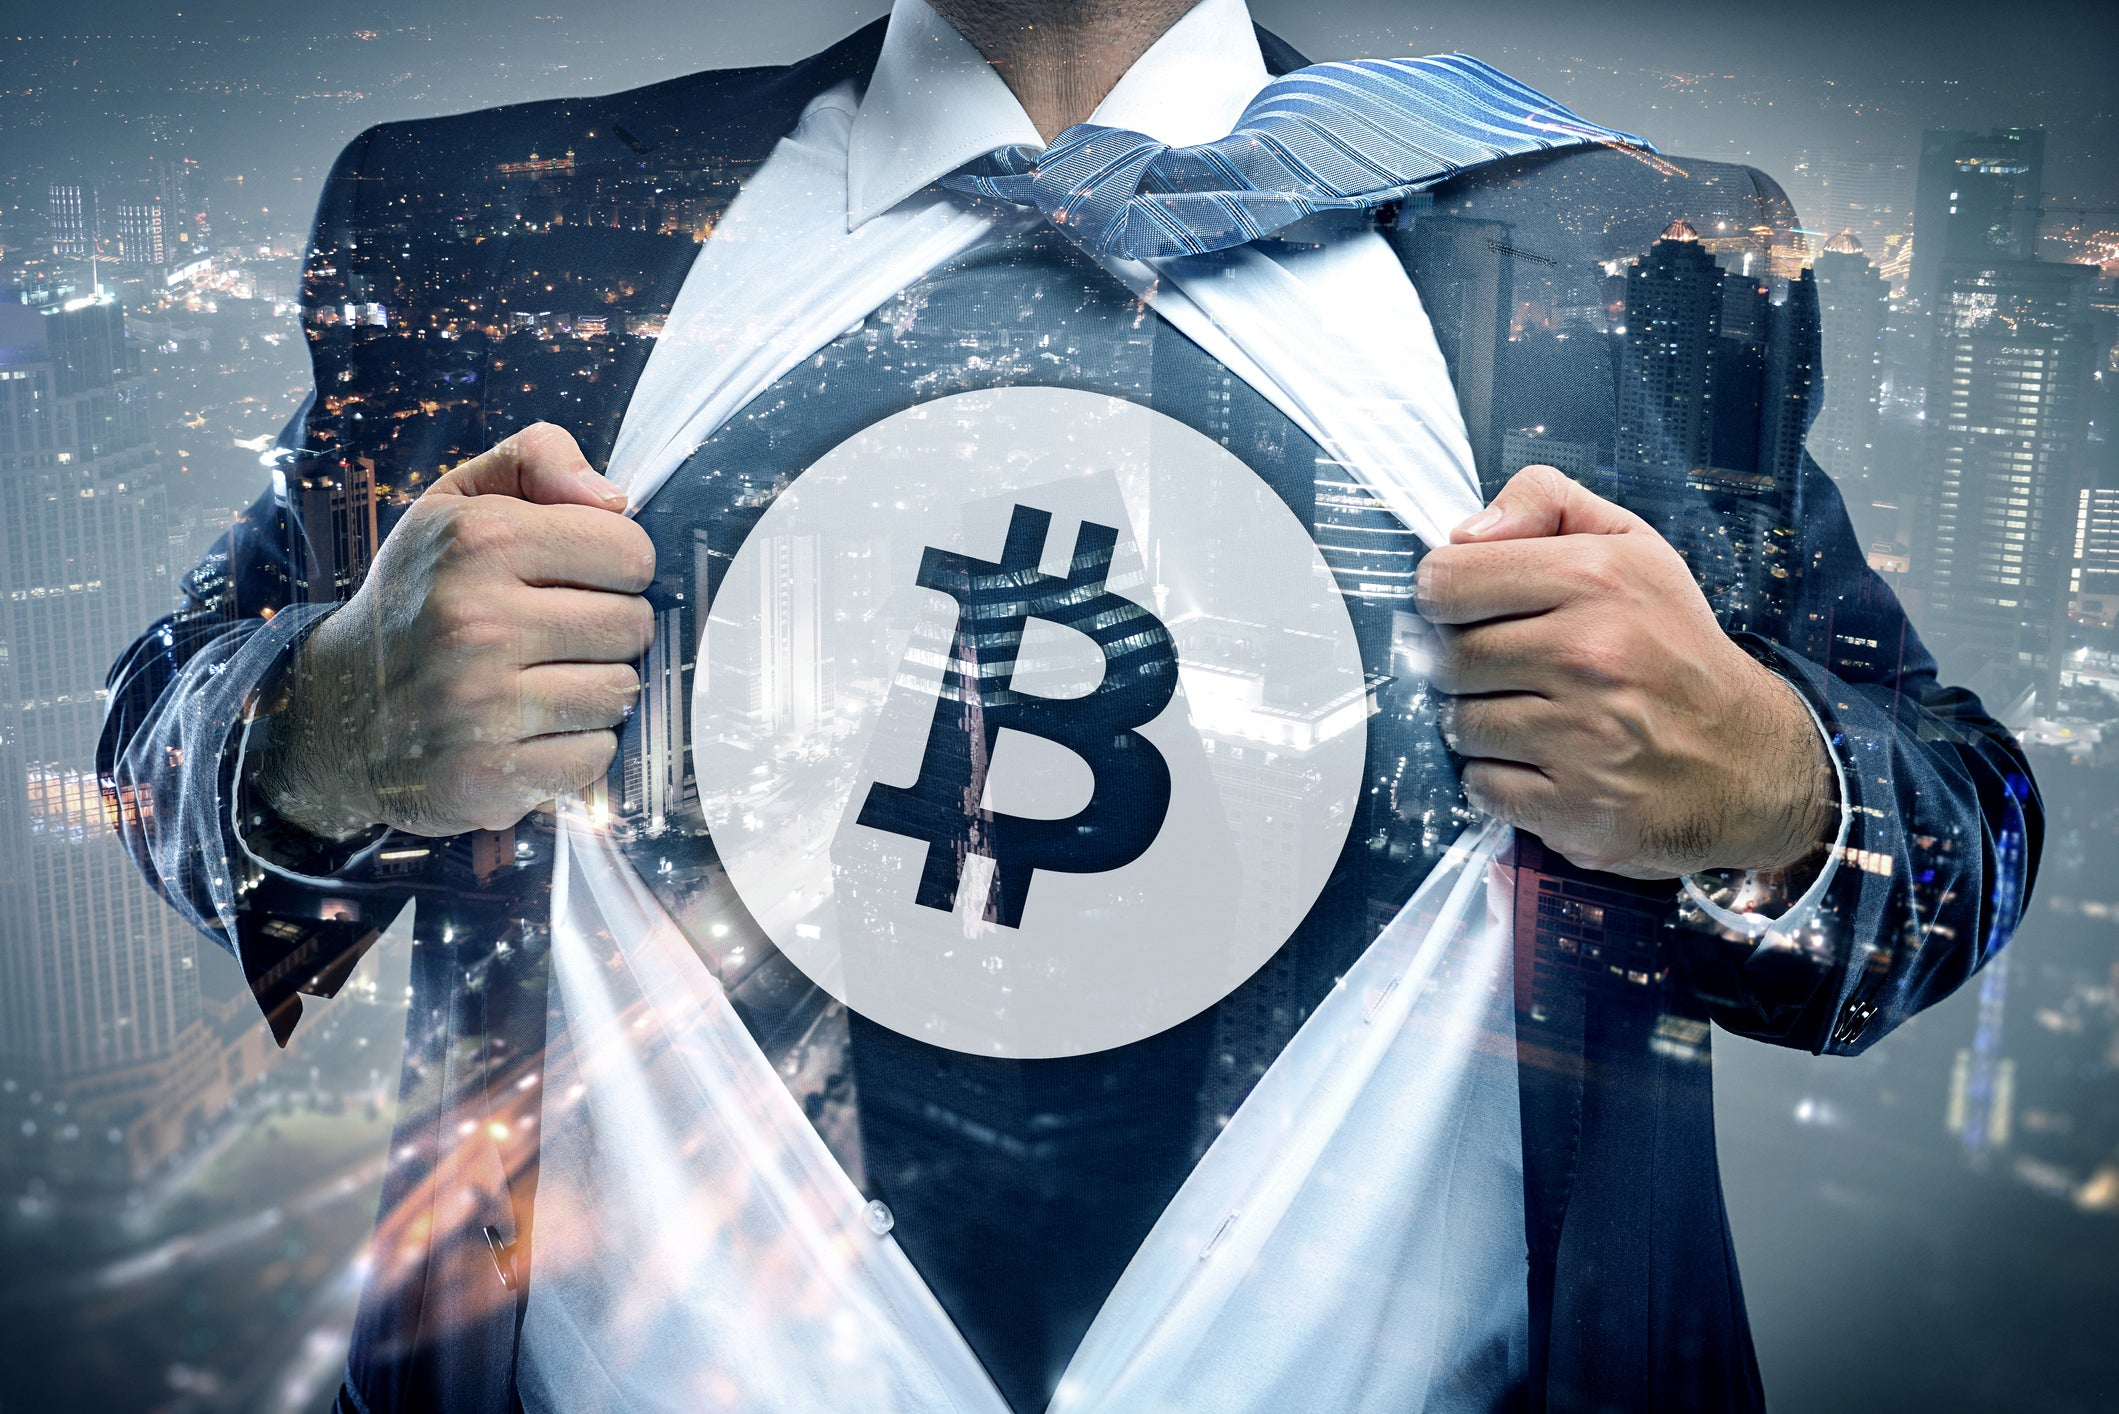 2 Ways Cathie Wood Is Betting on Bitcoin This Week